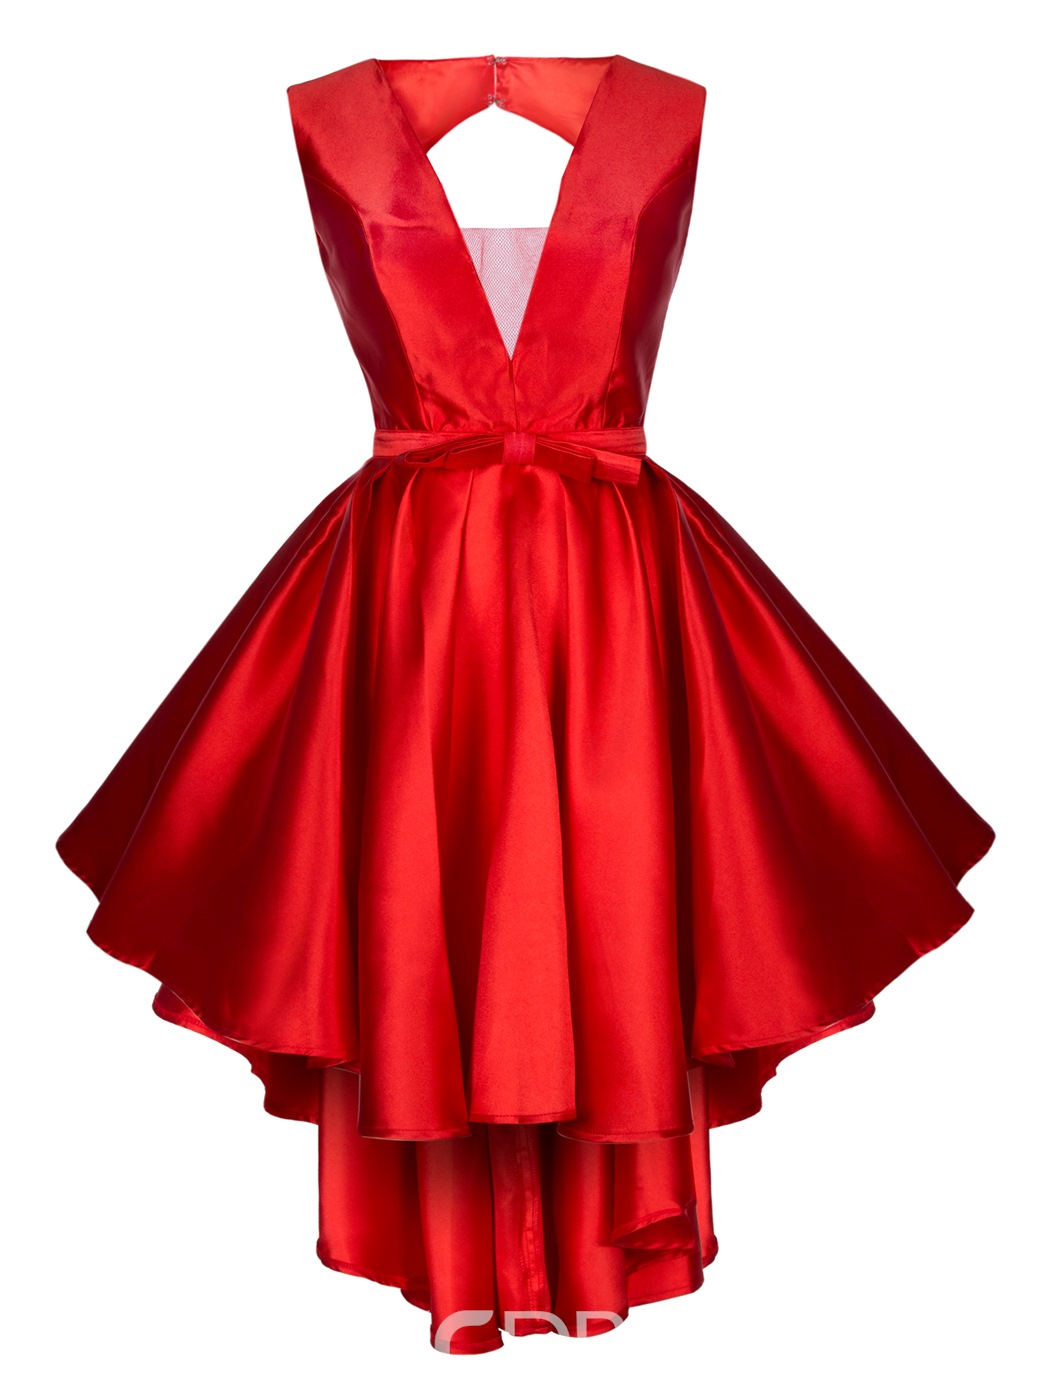 Ericdress v neck zipper-up bowknot une robe de bal en ligne